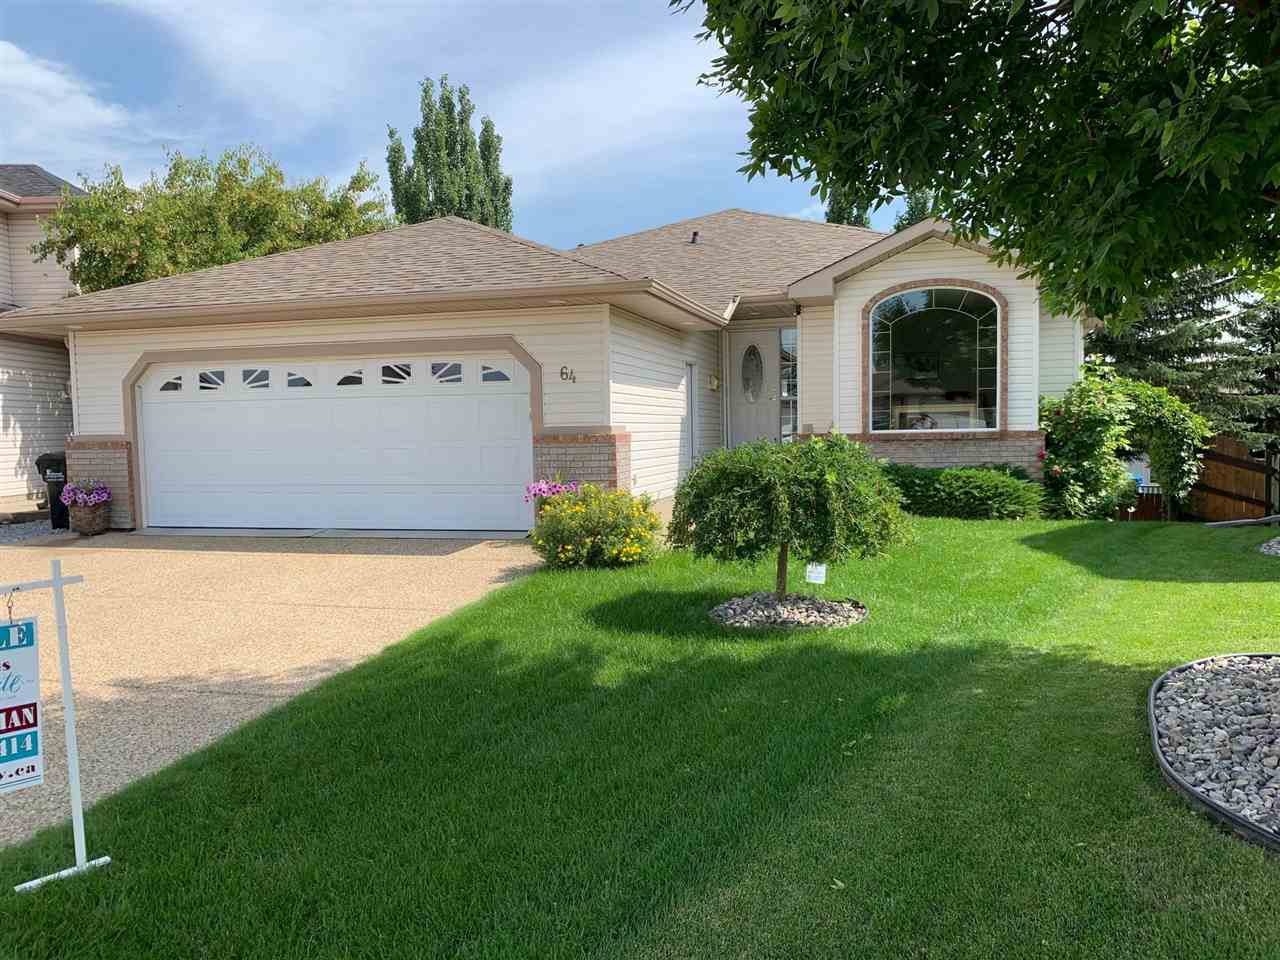 MLS® listing #E4166010 for sale located at 64 CHANCERY Way